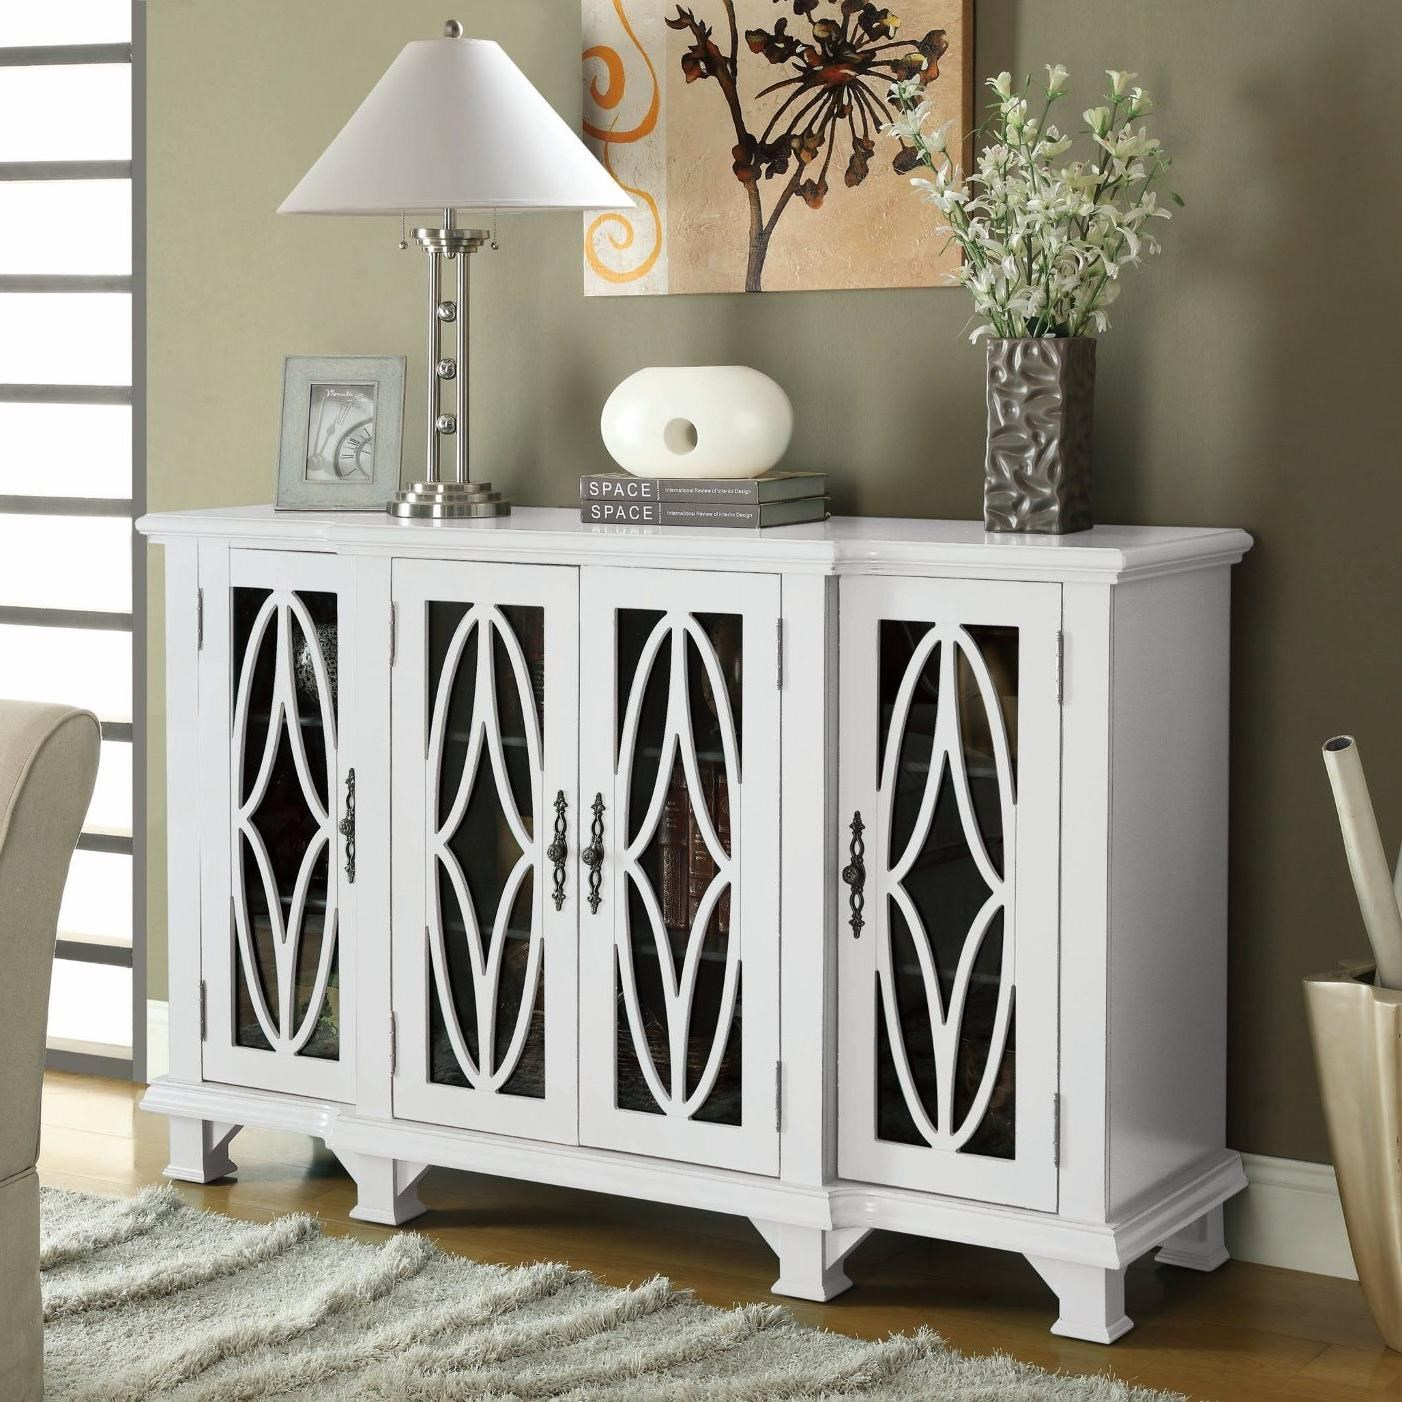 Coaster Accent Cabinets Large White Cabinet With 4 Glass Doors   Coaster  Fine Furniture